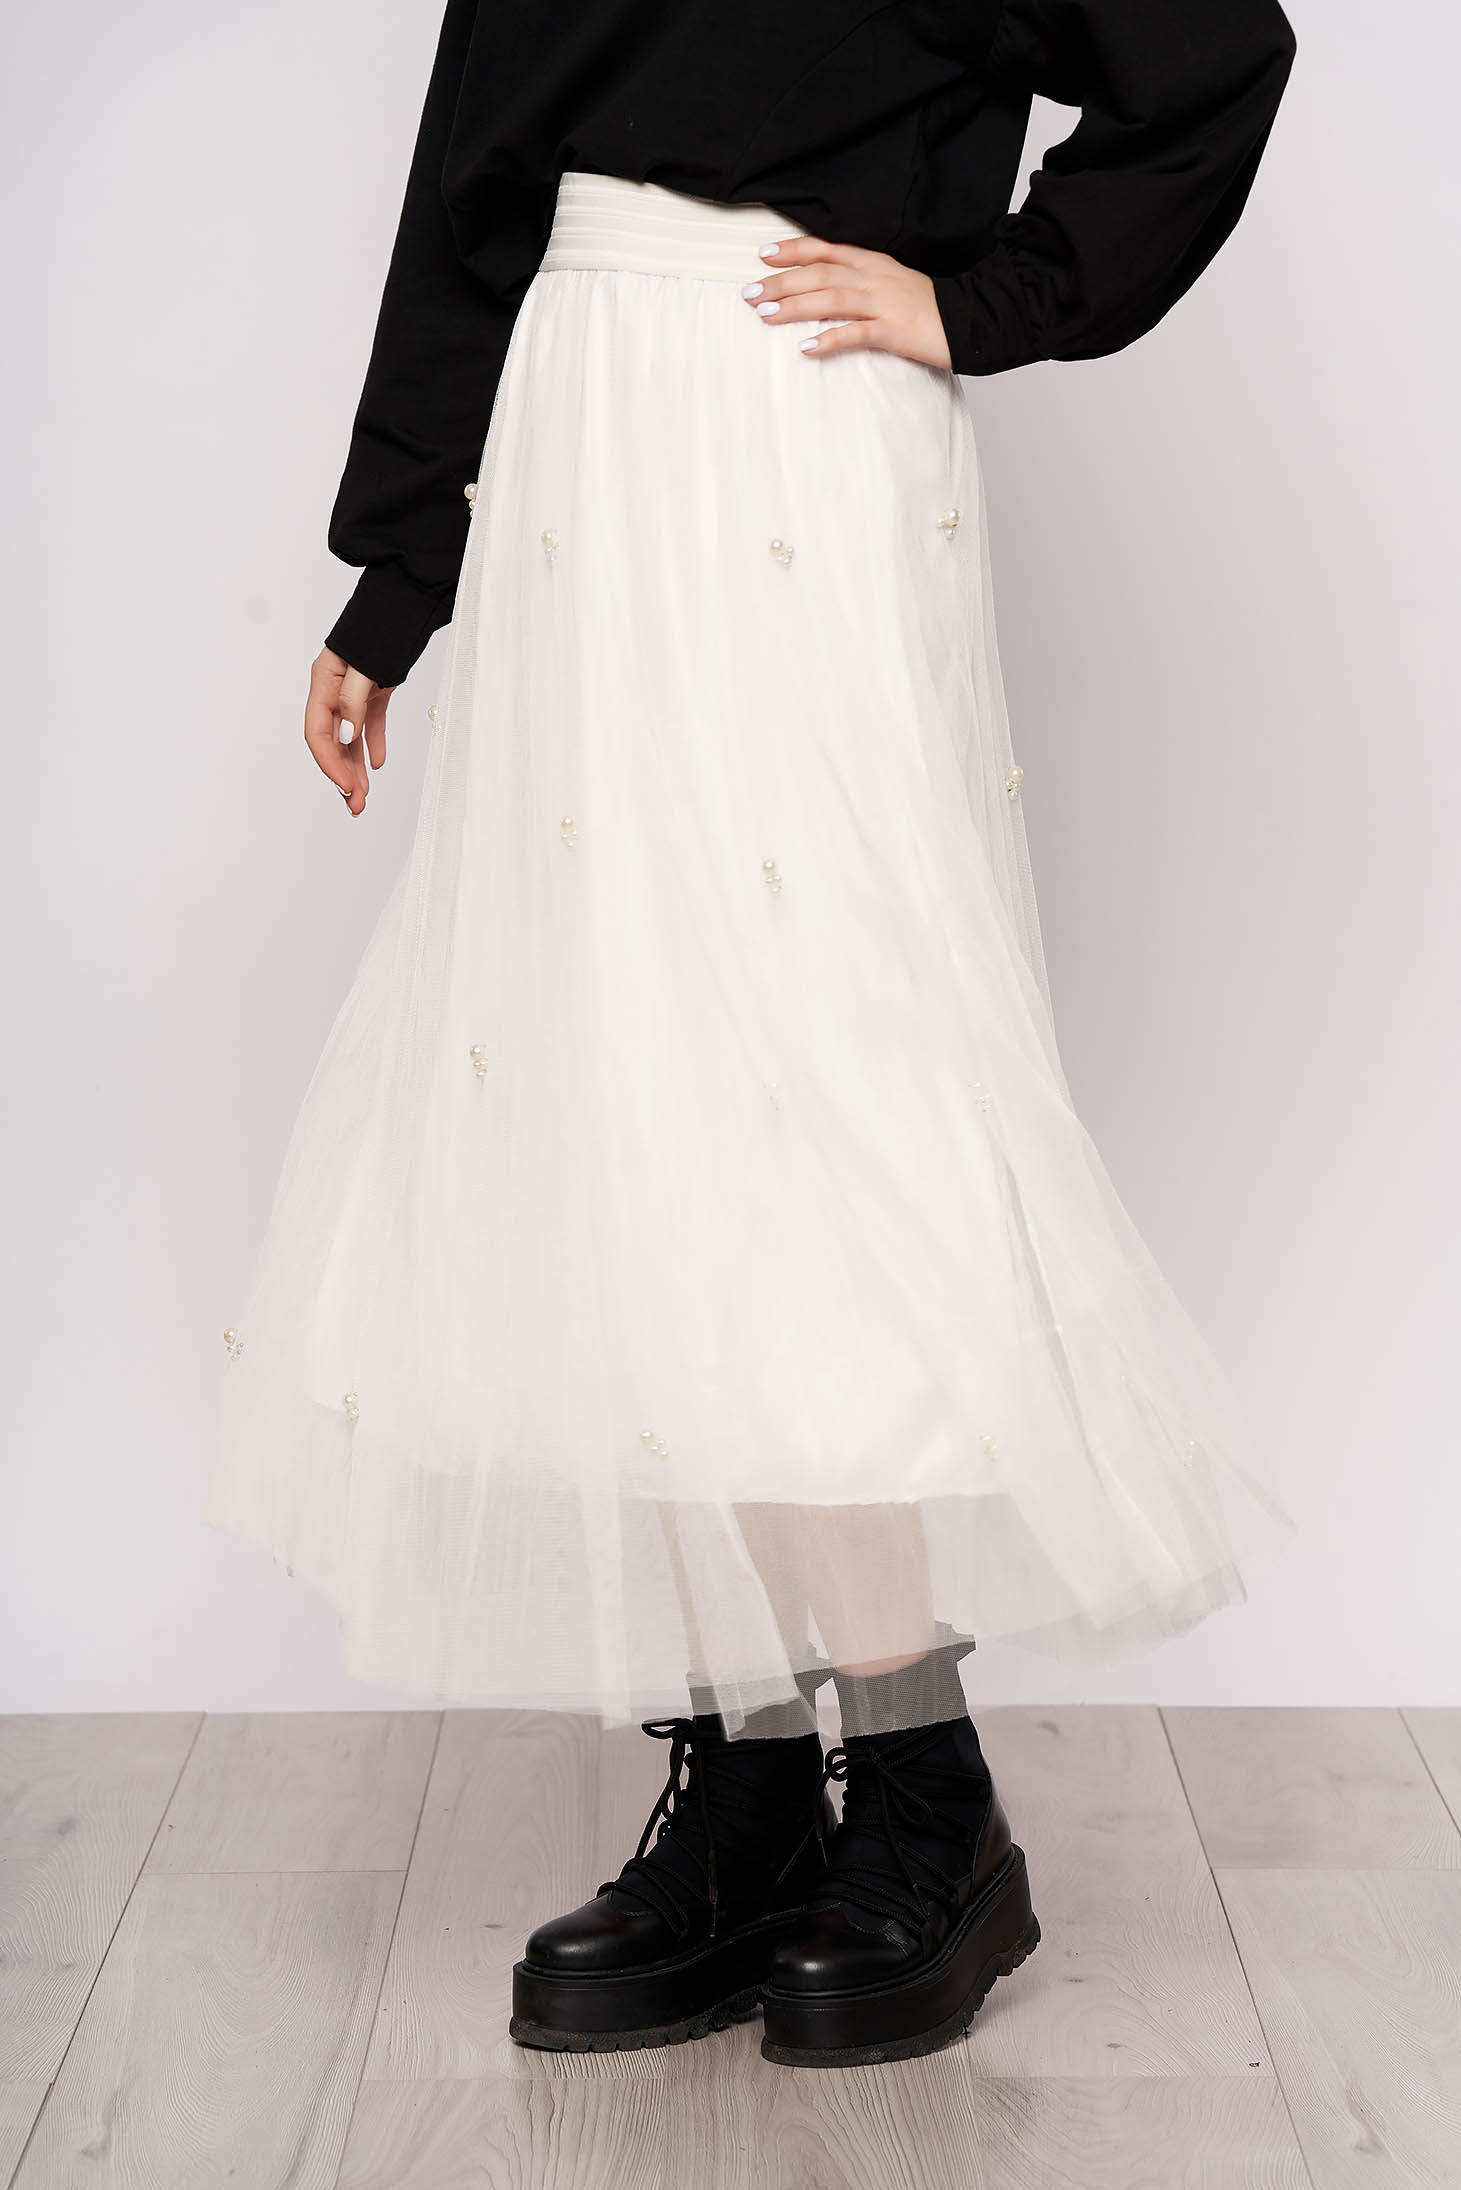 White casual high waisted midi skirt from tulle with pearls